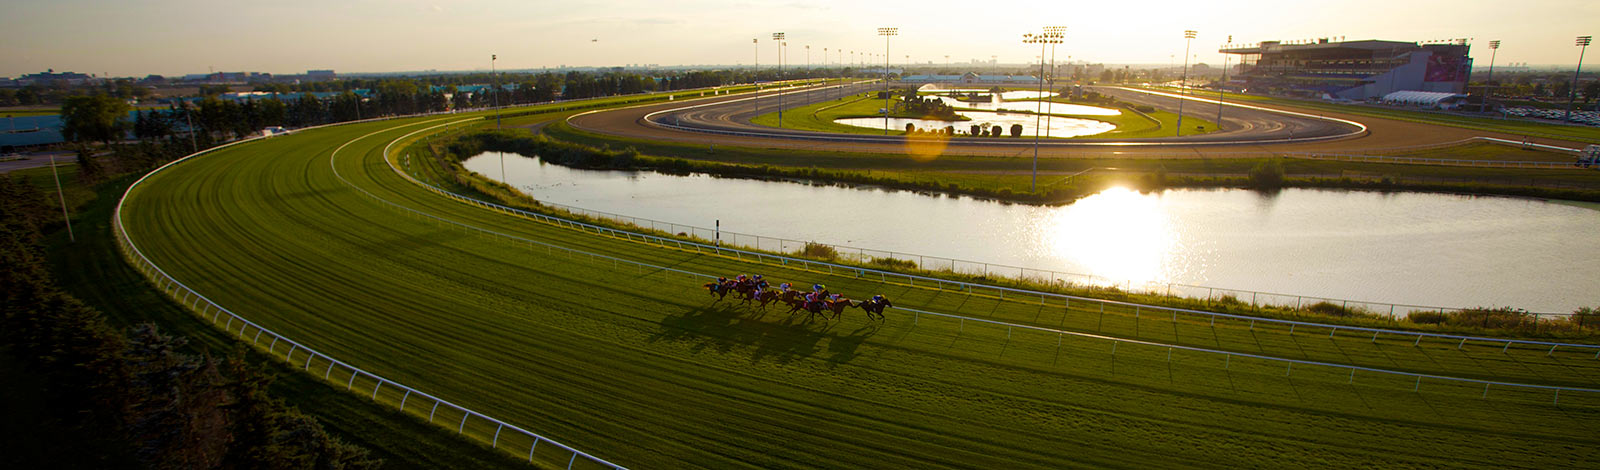 Woodbine Turf Course